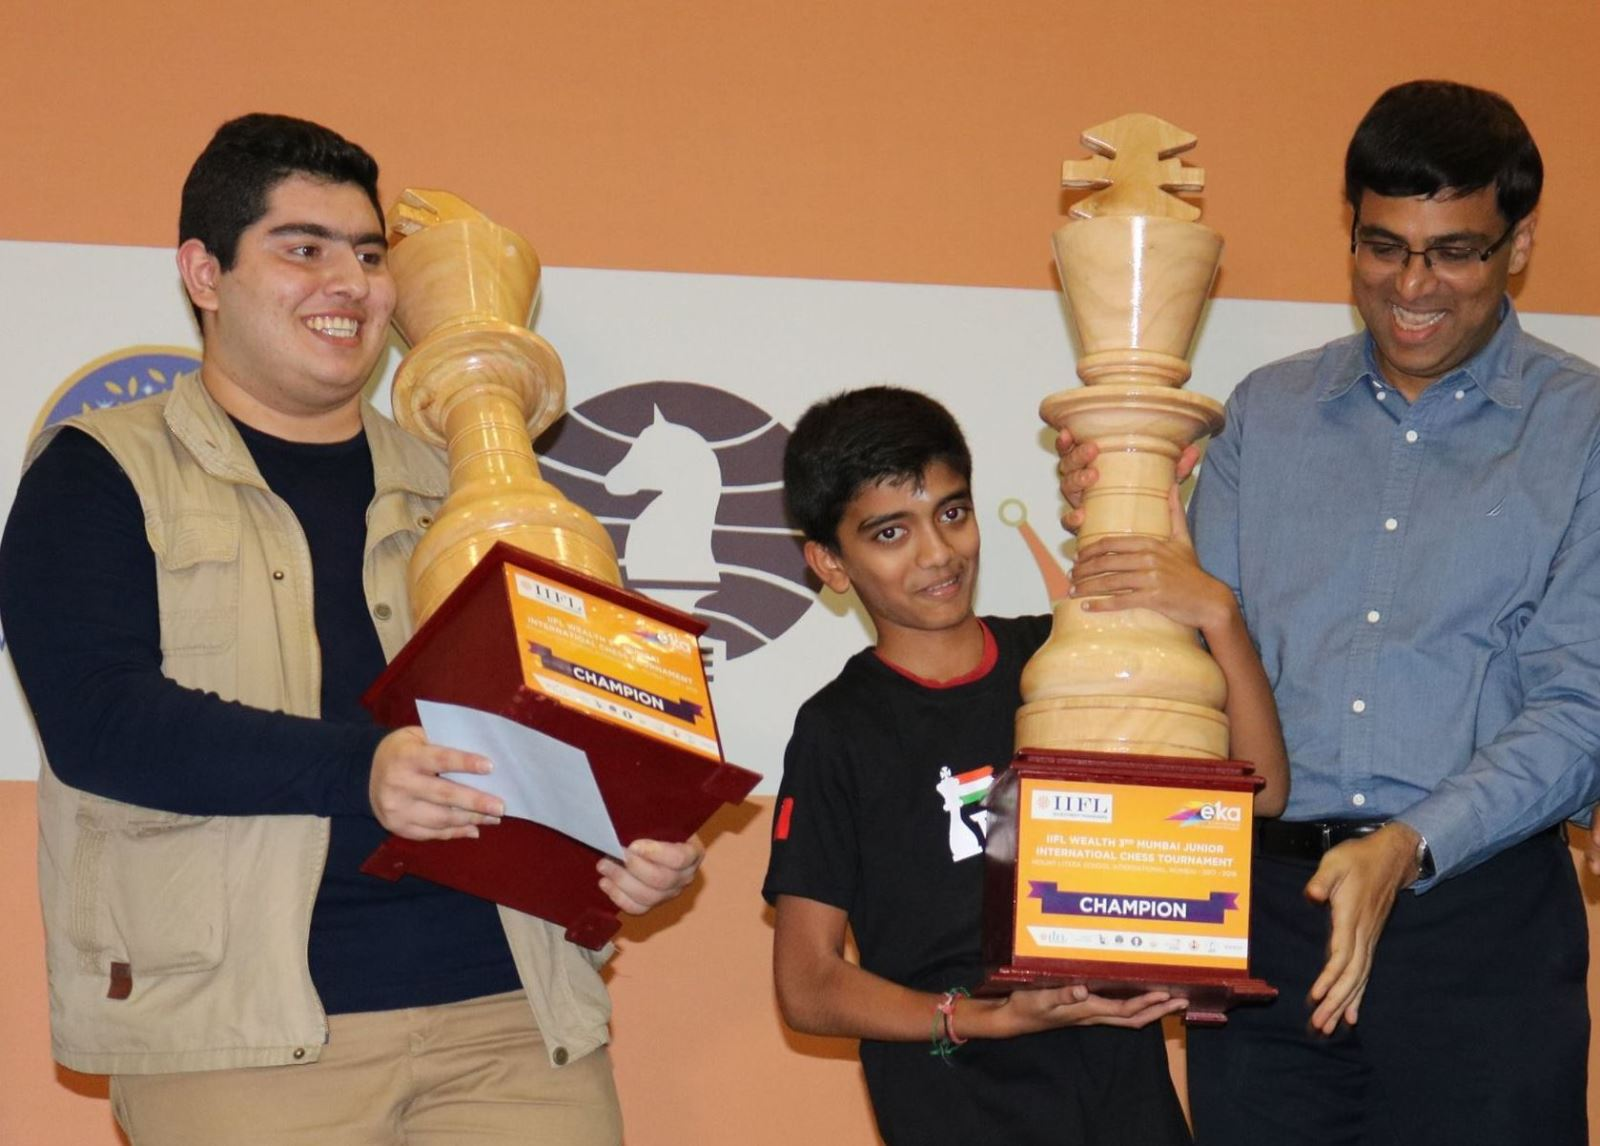 Parham Maghsoodloo, Gukesh and Anand